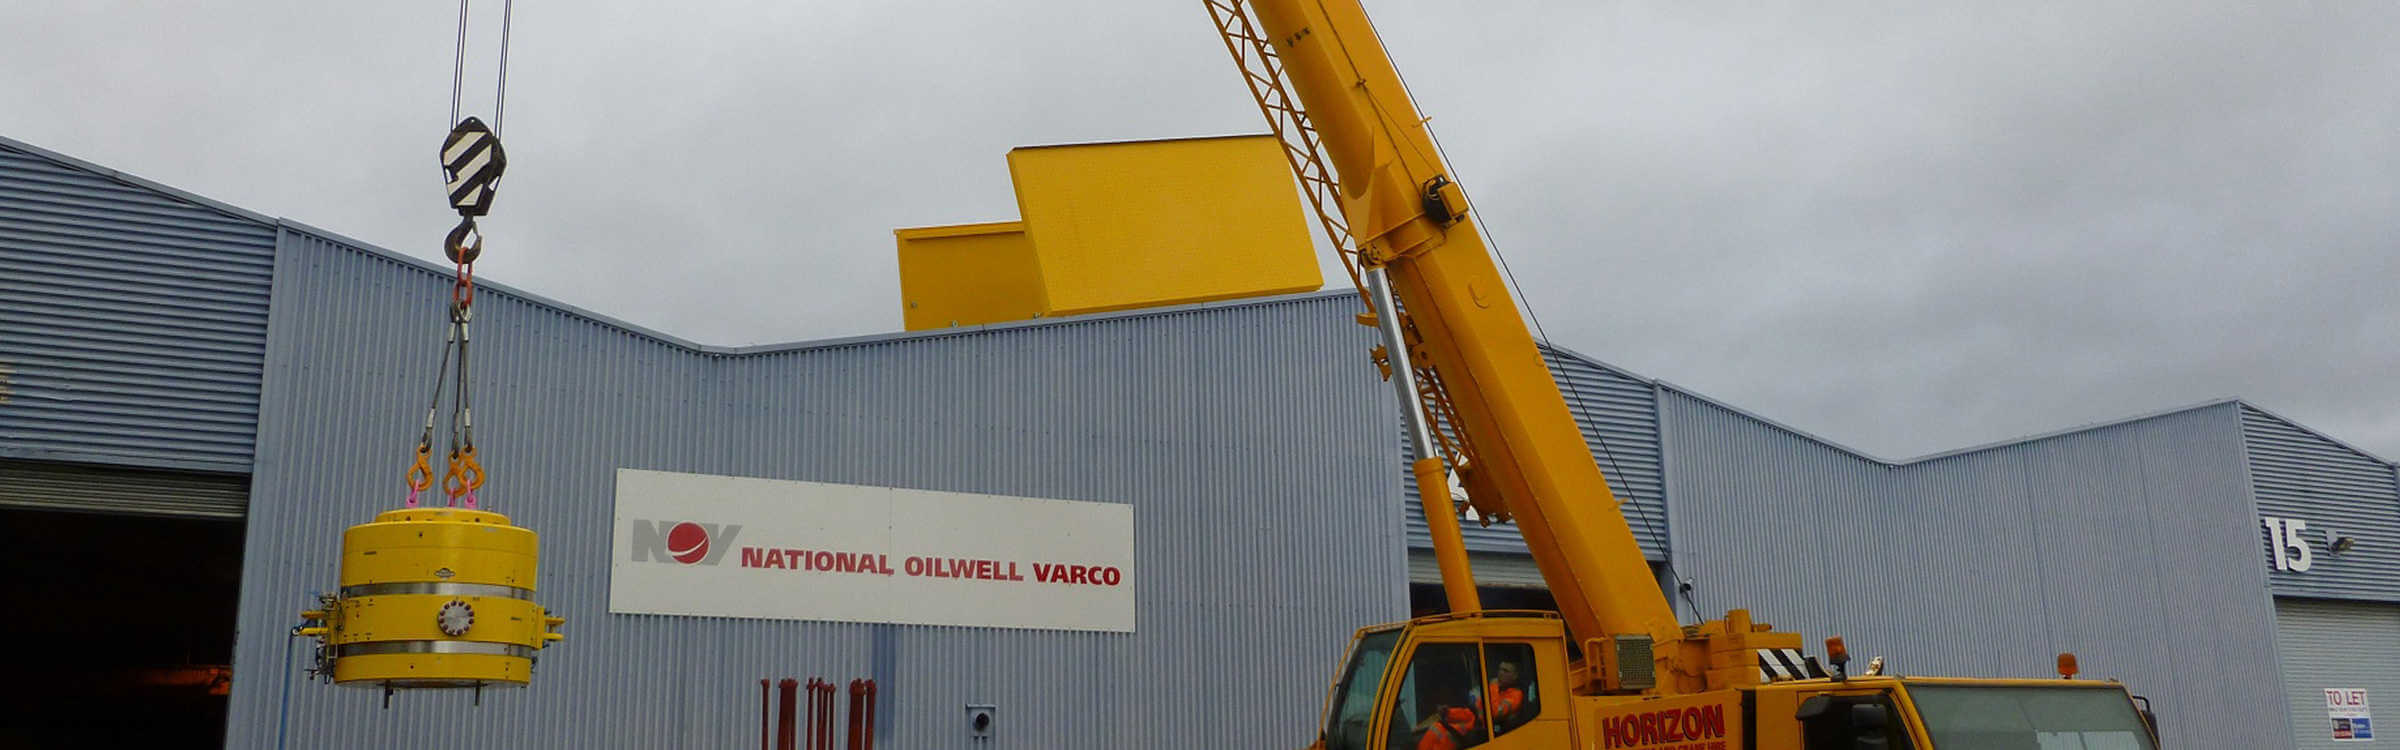 National-Oil-Well-Vargo---Double-Leaf-Access-Banner22400-x-750